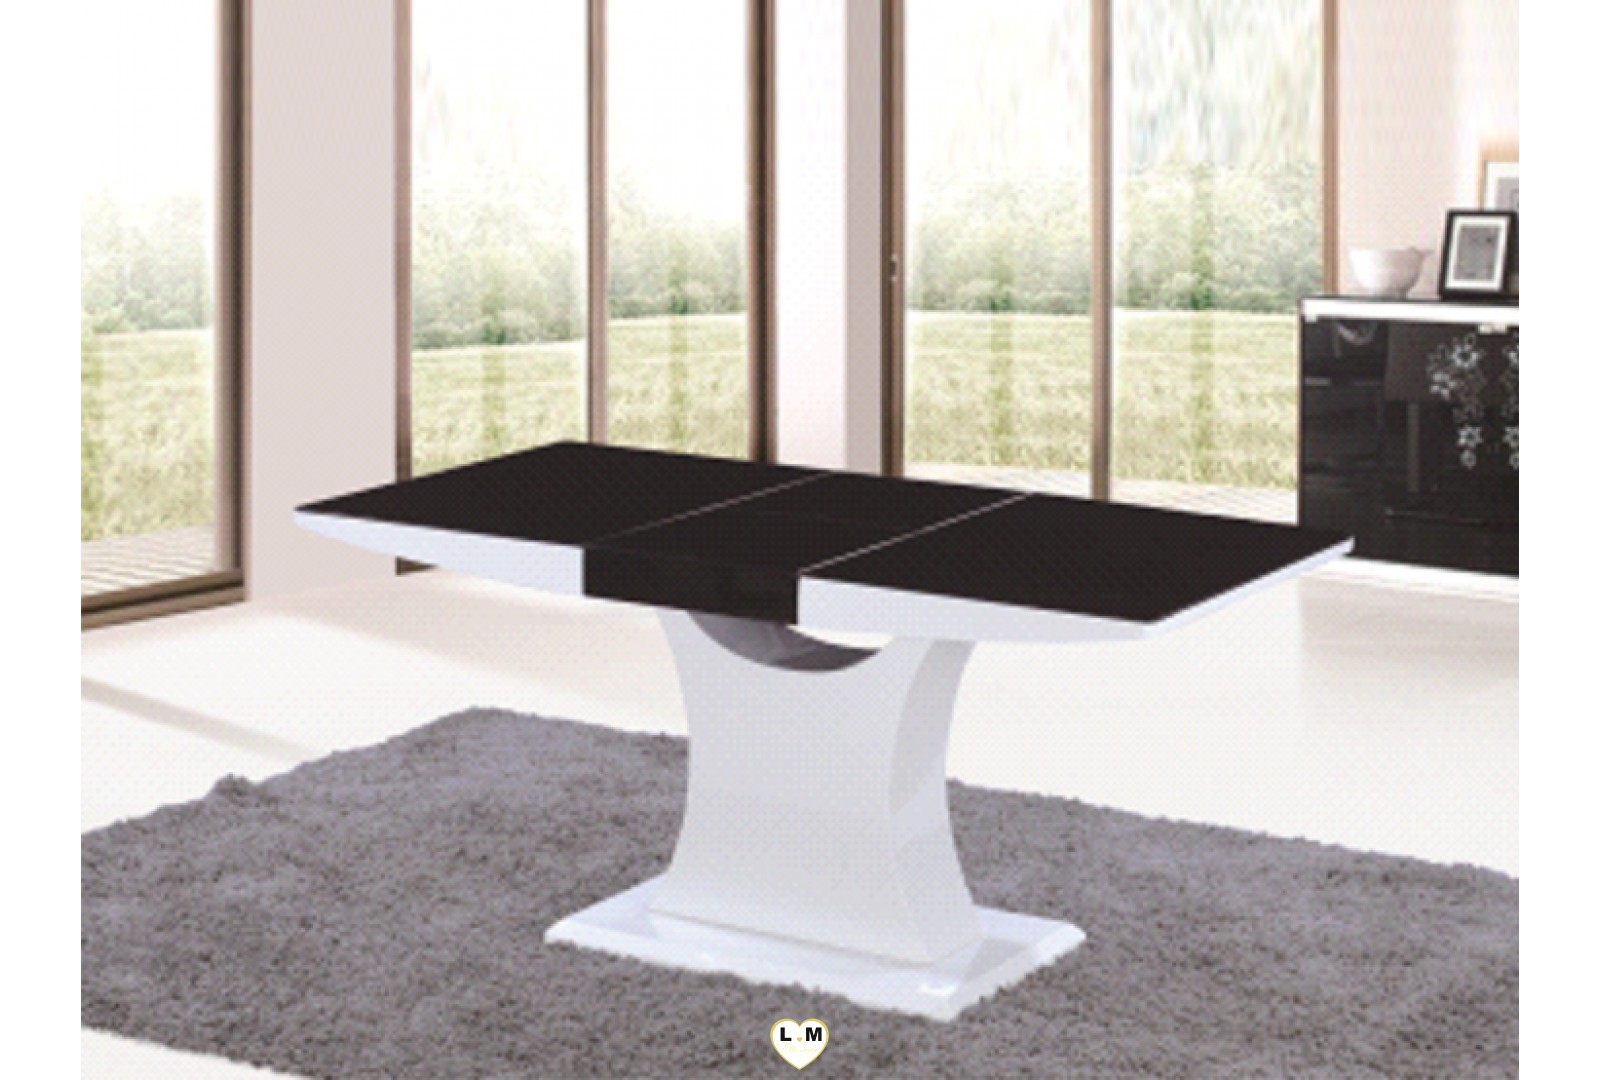 t107nb table allonge salle a manger laque blanc et verre noir lignemeuble com. Black Bedroom Furniture Sets. Home Design Ideas